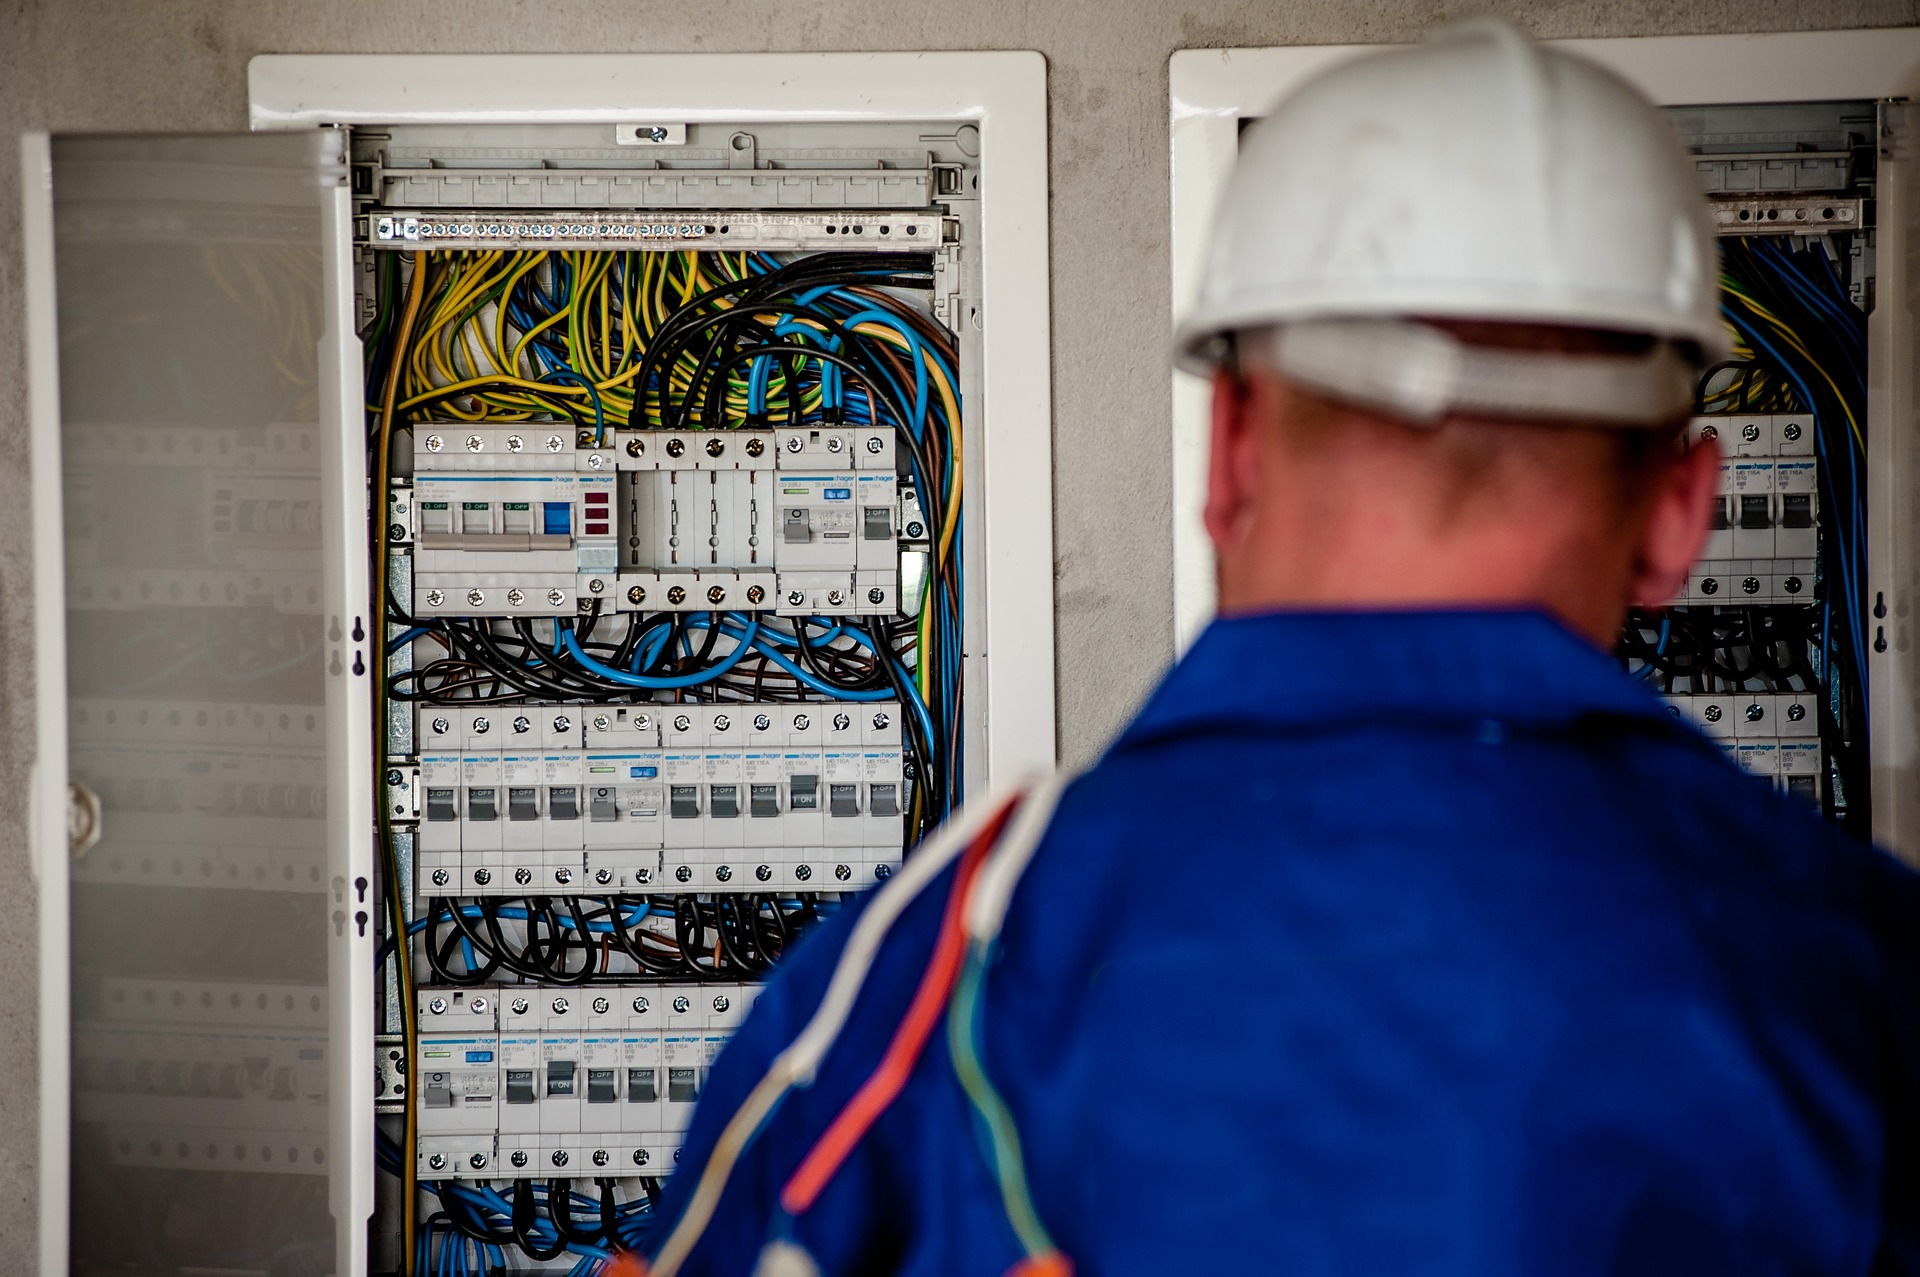 a worker in the field service industry checking equipment